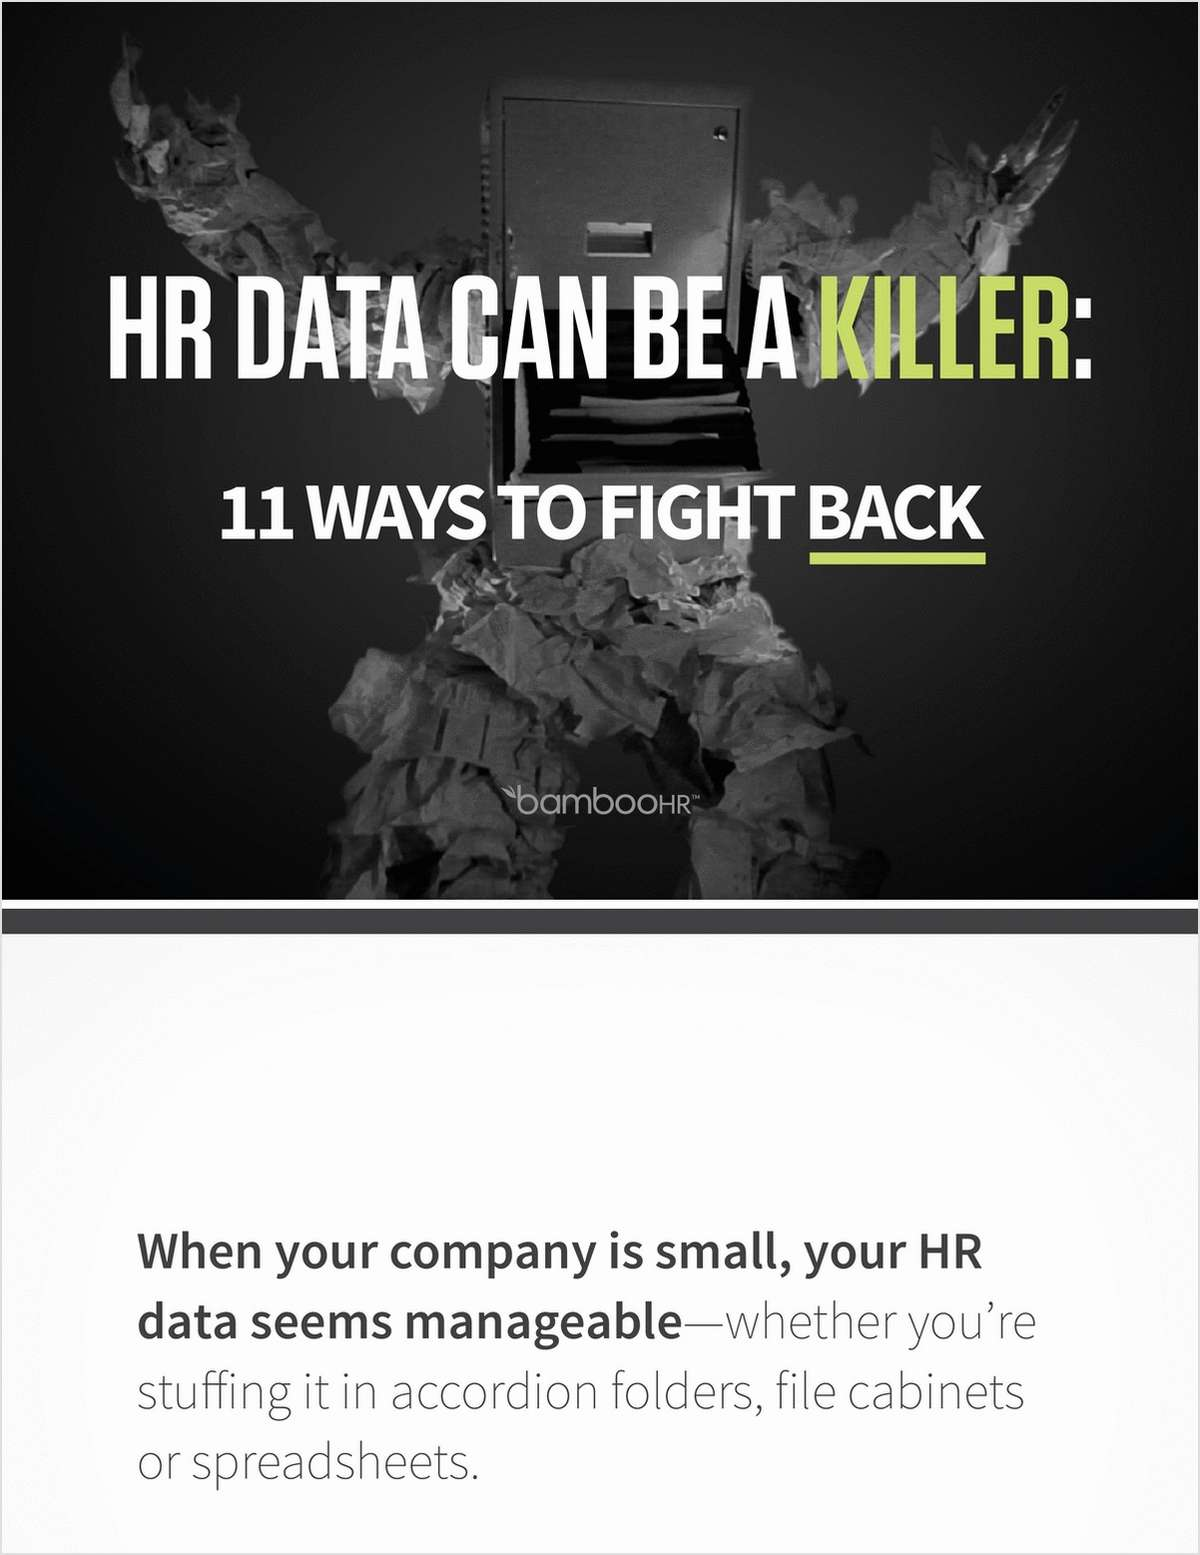 HR Data Can Be A Killer: 11 Ways to Fight Back